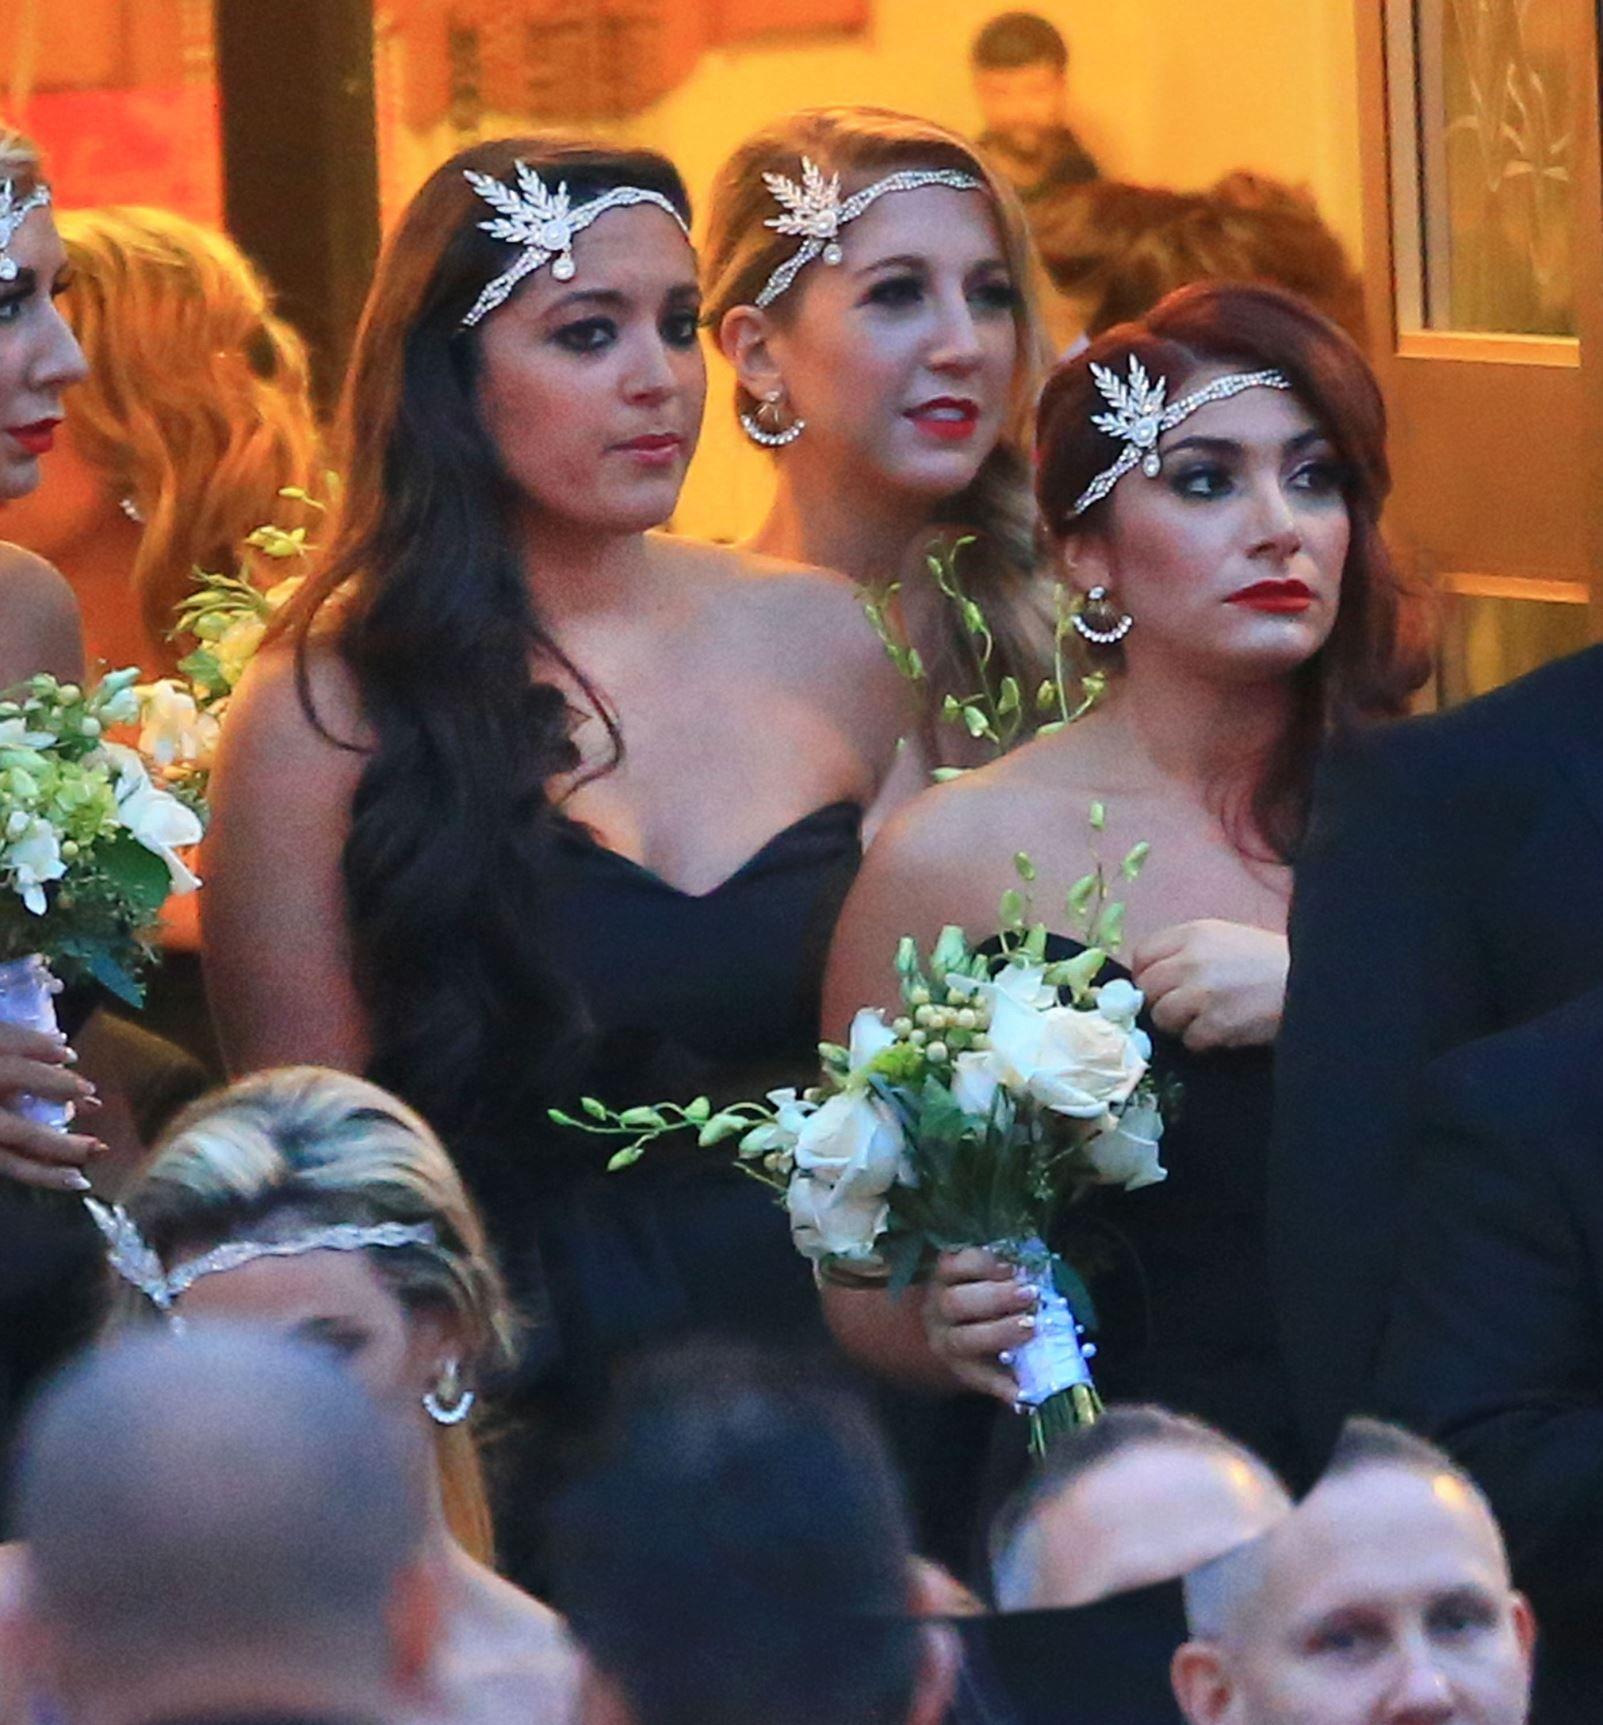 Snookis Wedding New Photos From Jersey Shore Star Nicole Polizzis Nuptials